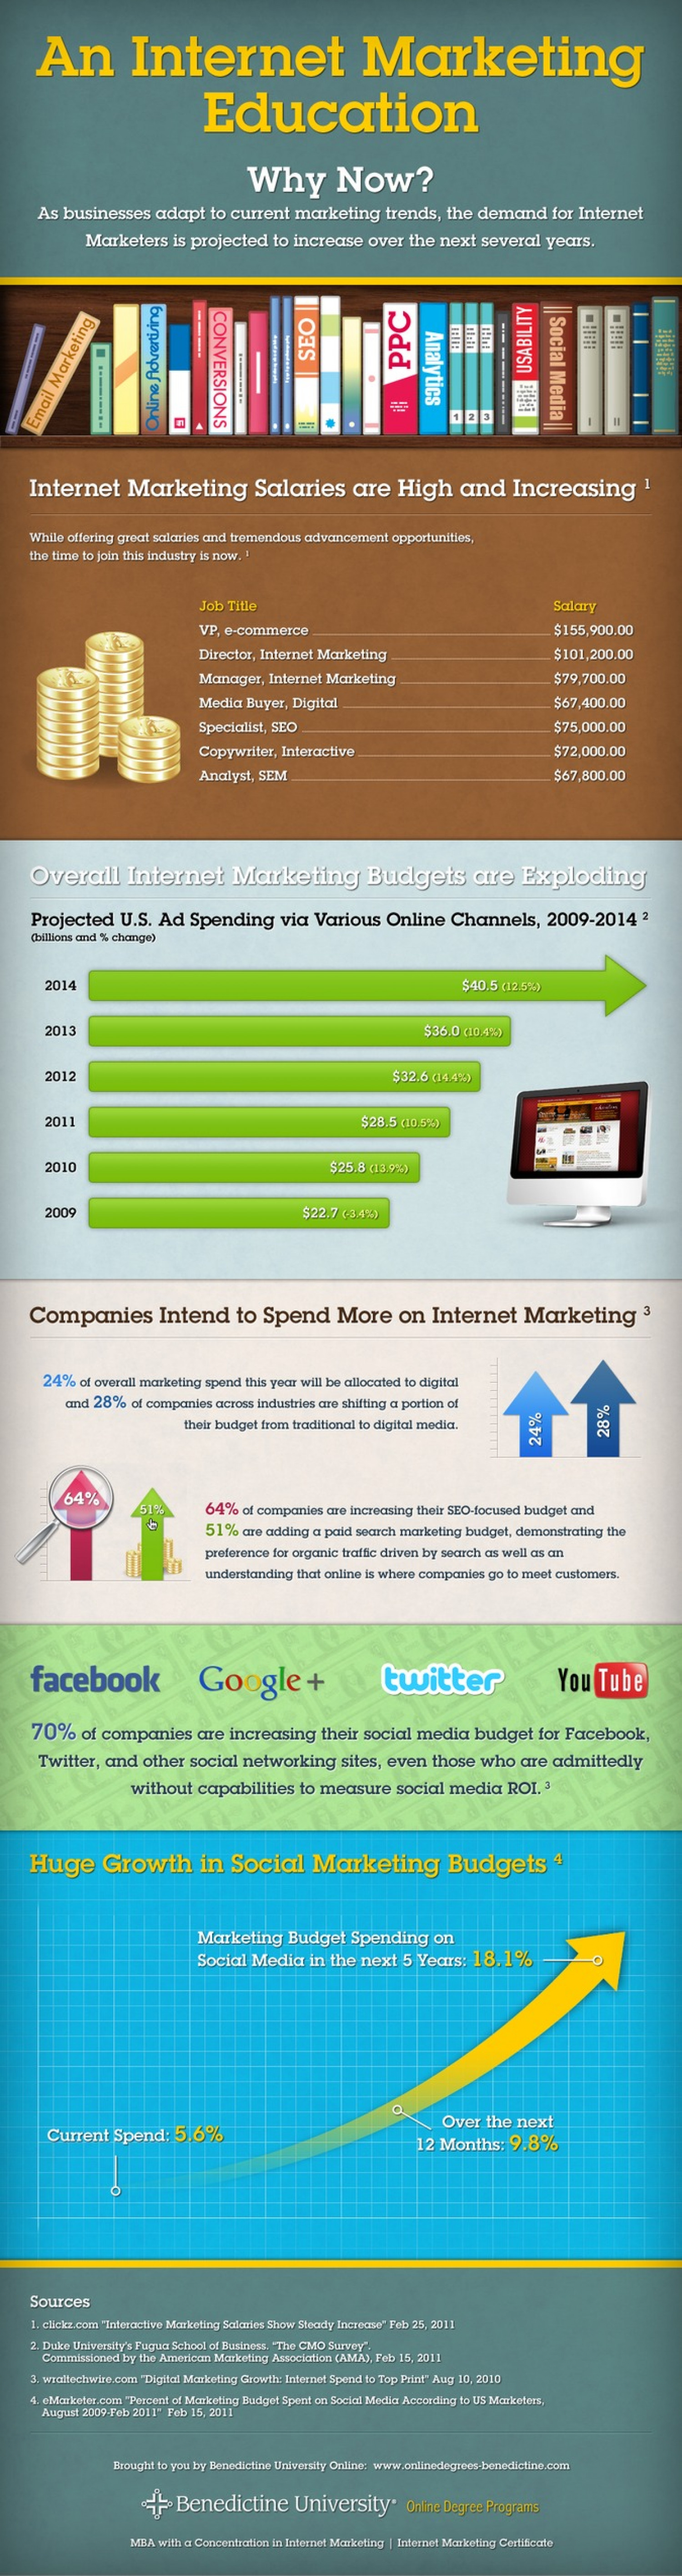 An Internet Marketing Education: Why Now? - Benedictine University Infographic